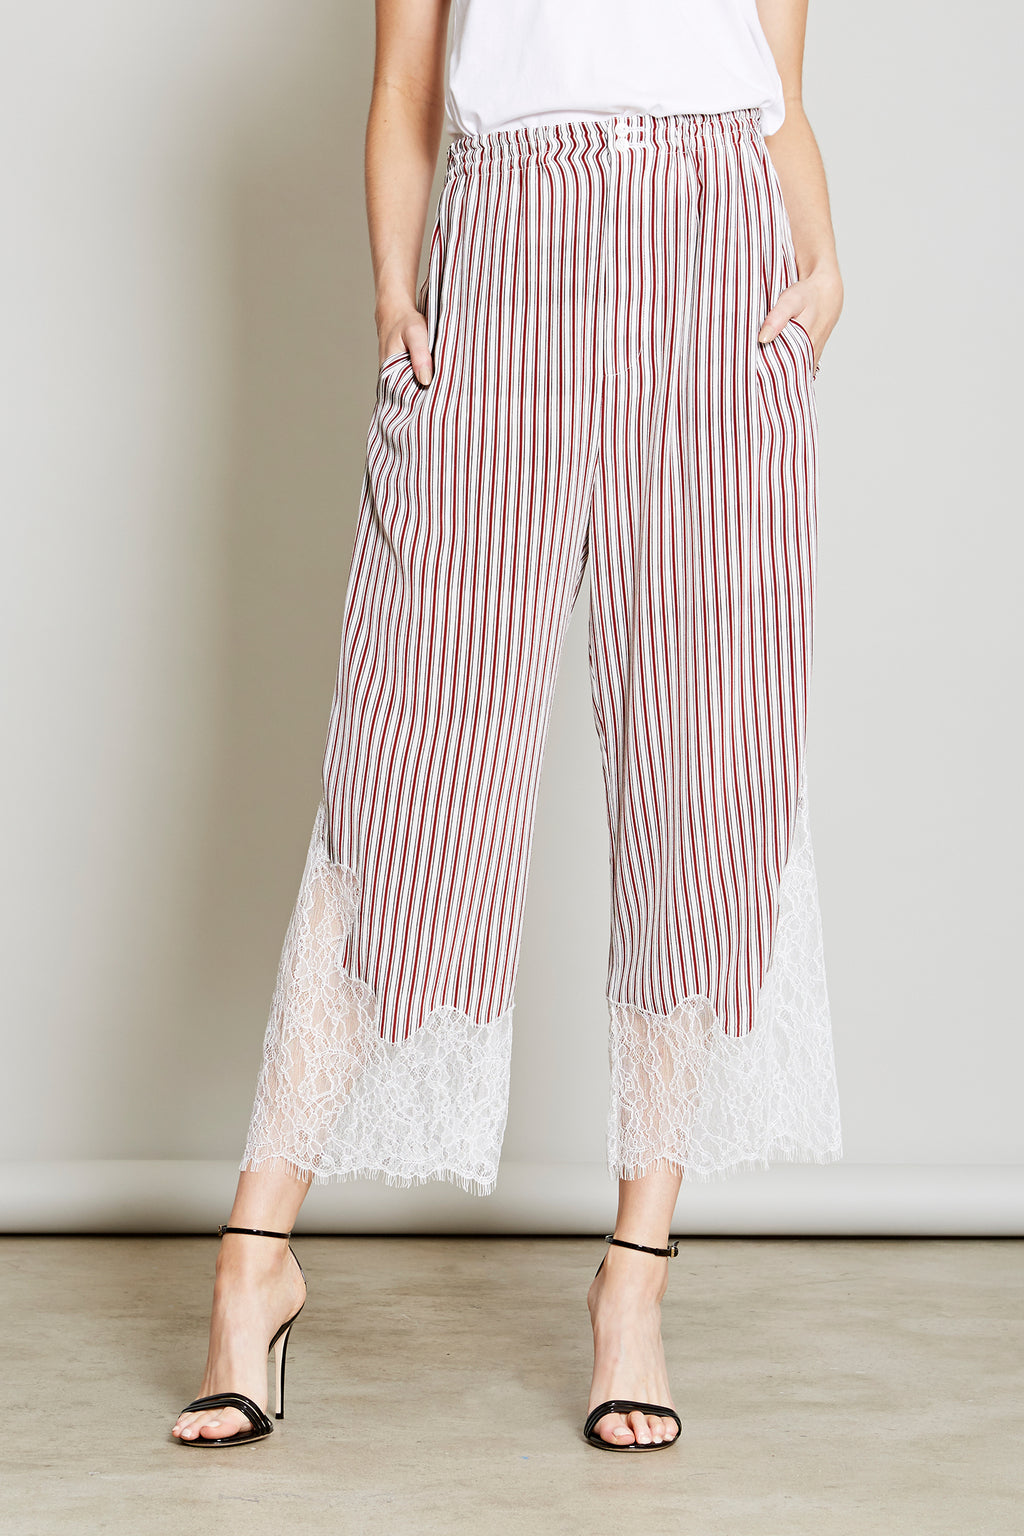 Robert Rodriguez Studio Women's Fashion Designer Red and White Striped Pant with Lace Trim